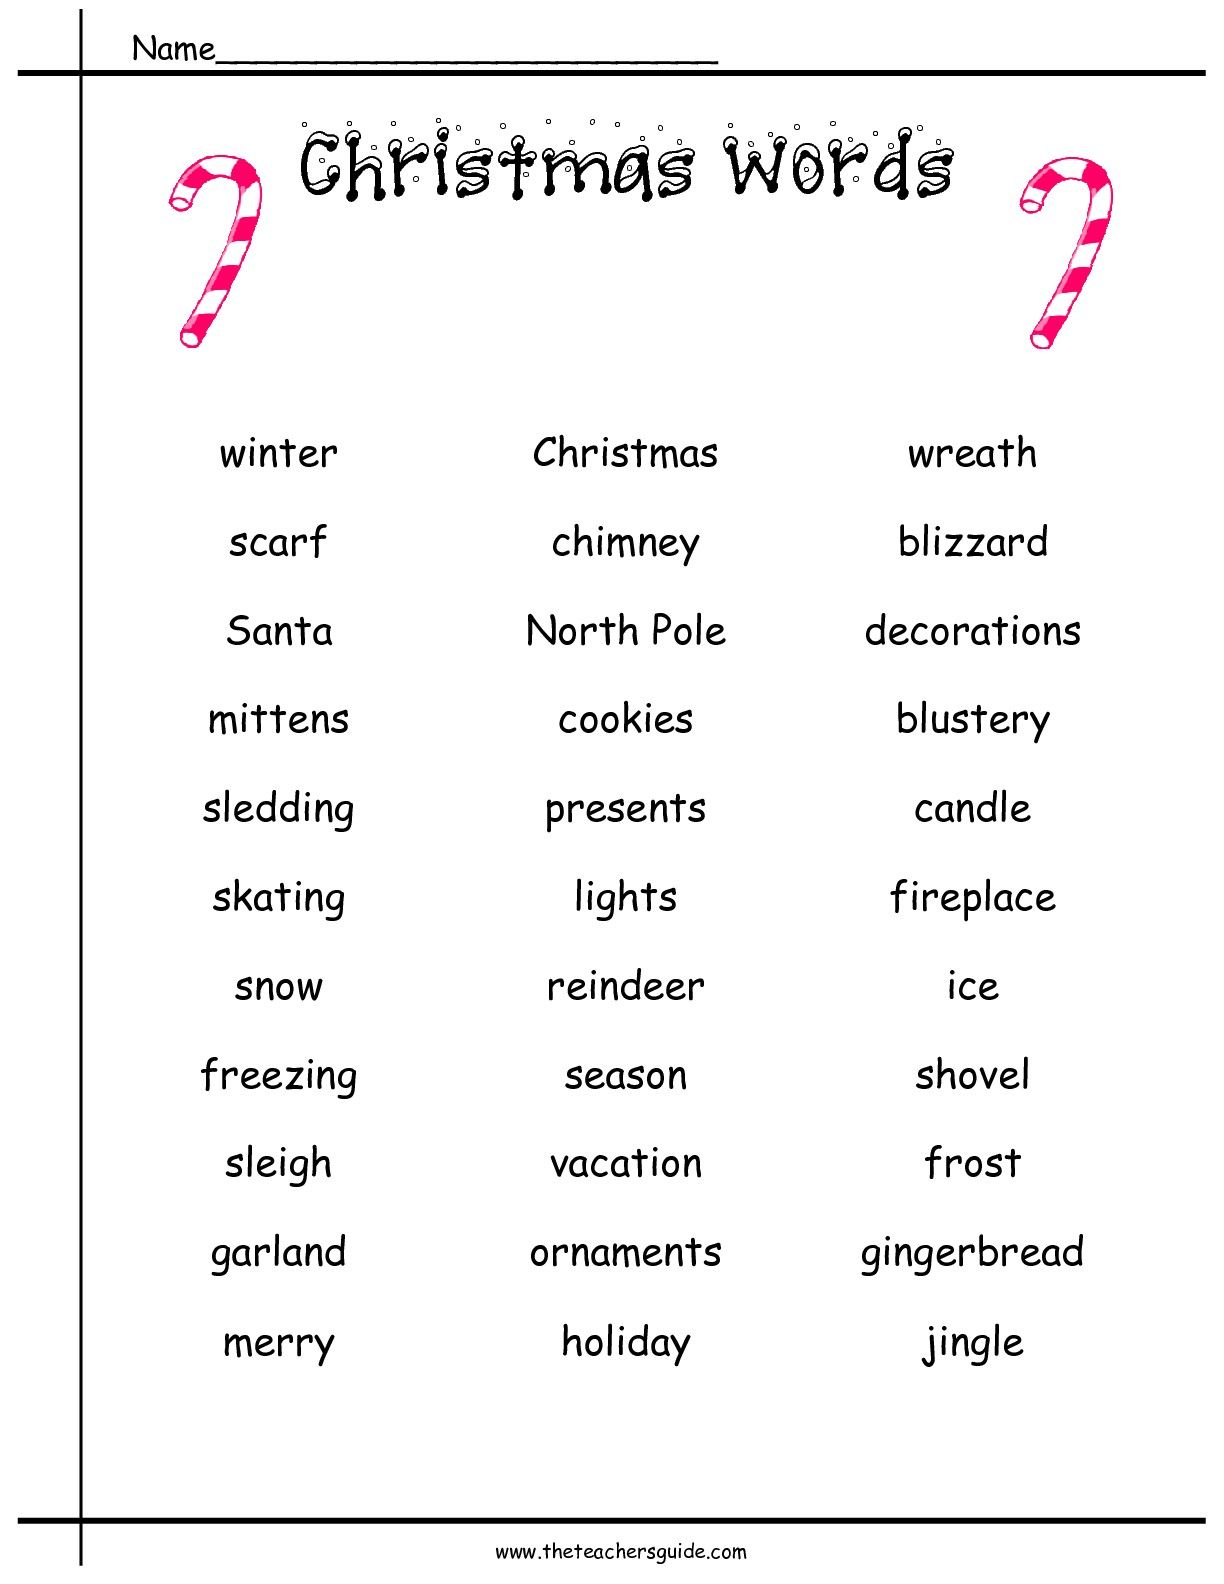 Christmas Printouts From The Teacher's Guide | Christmas